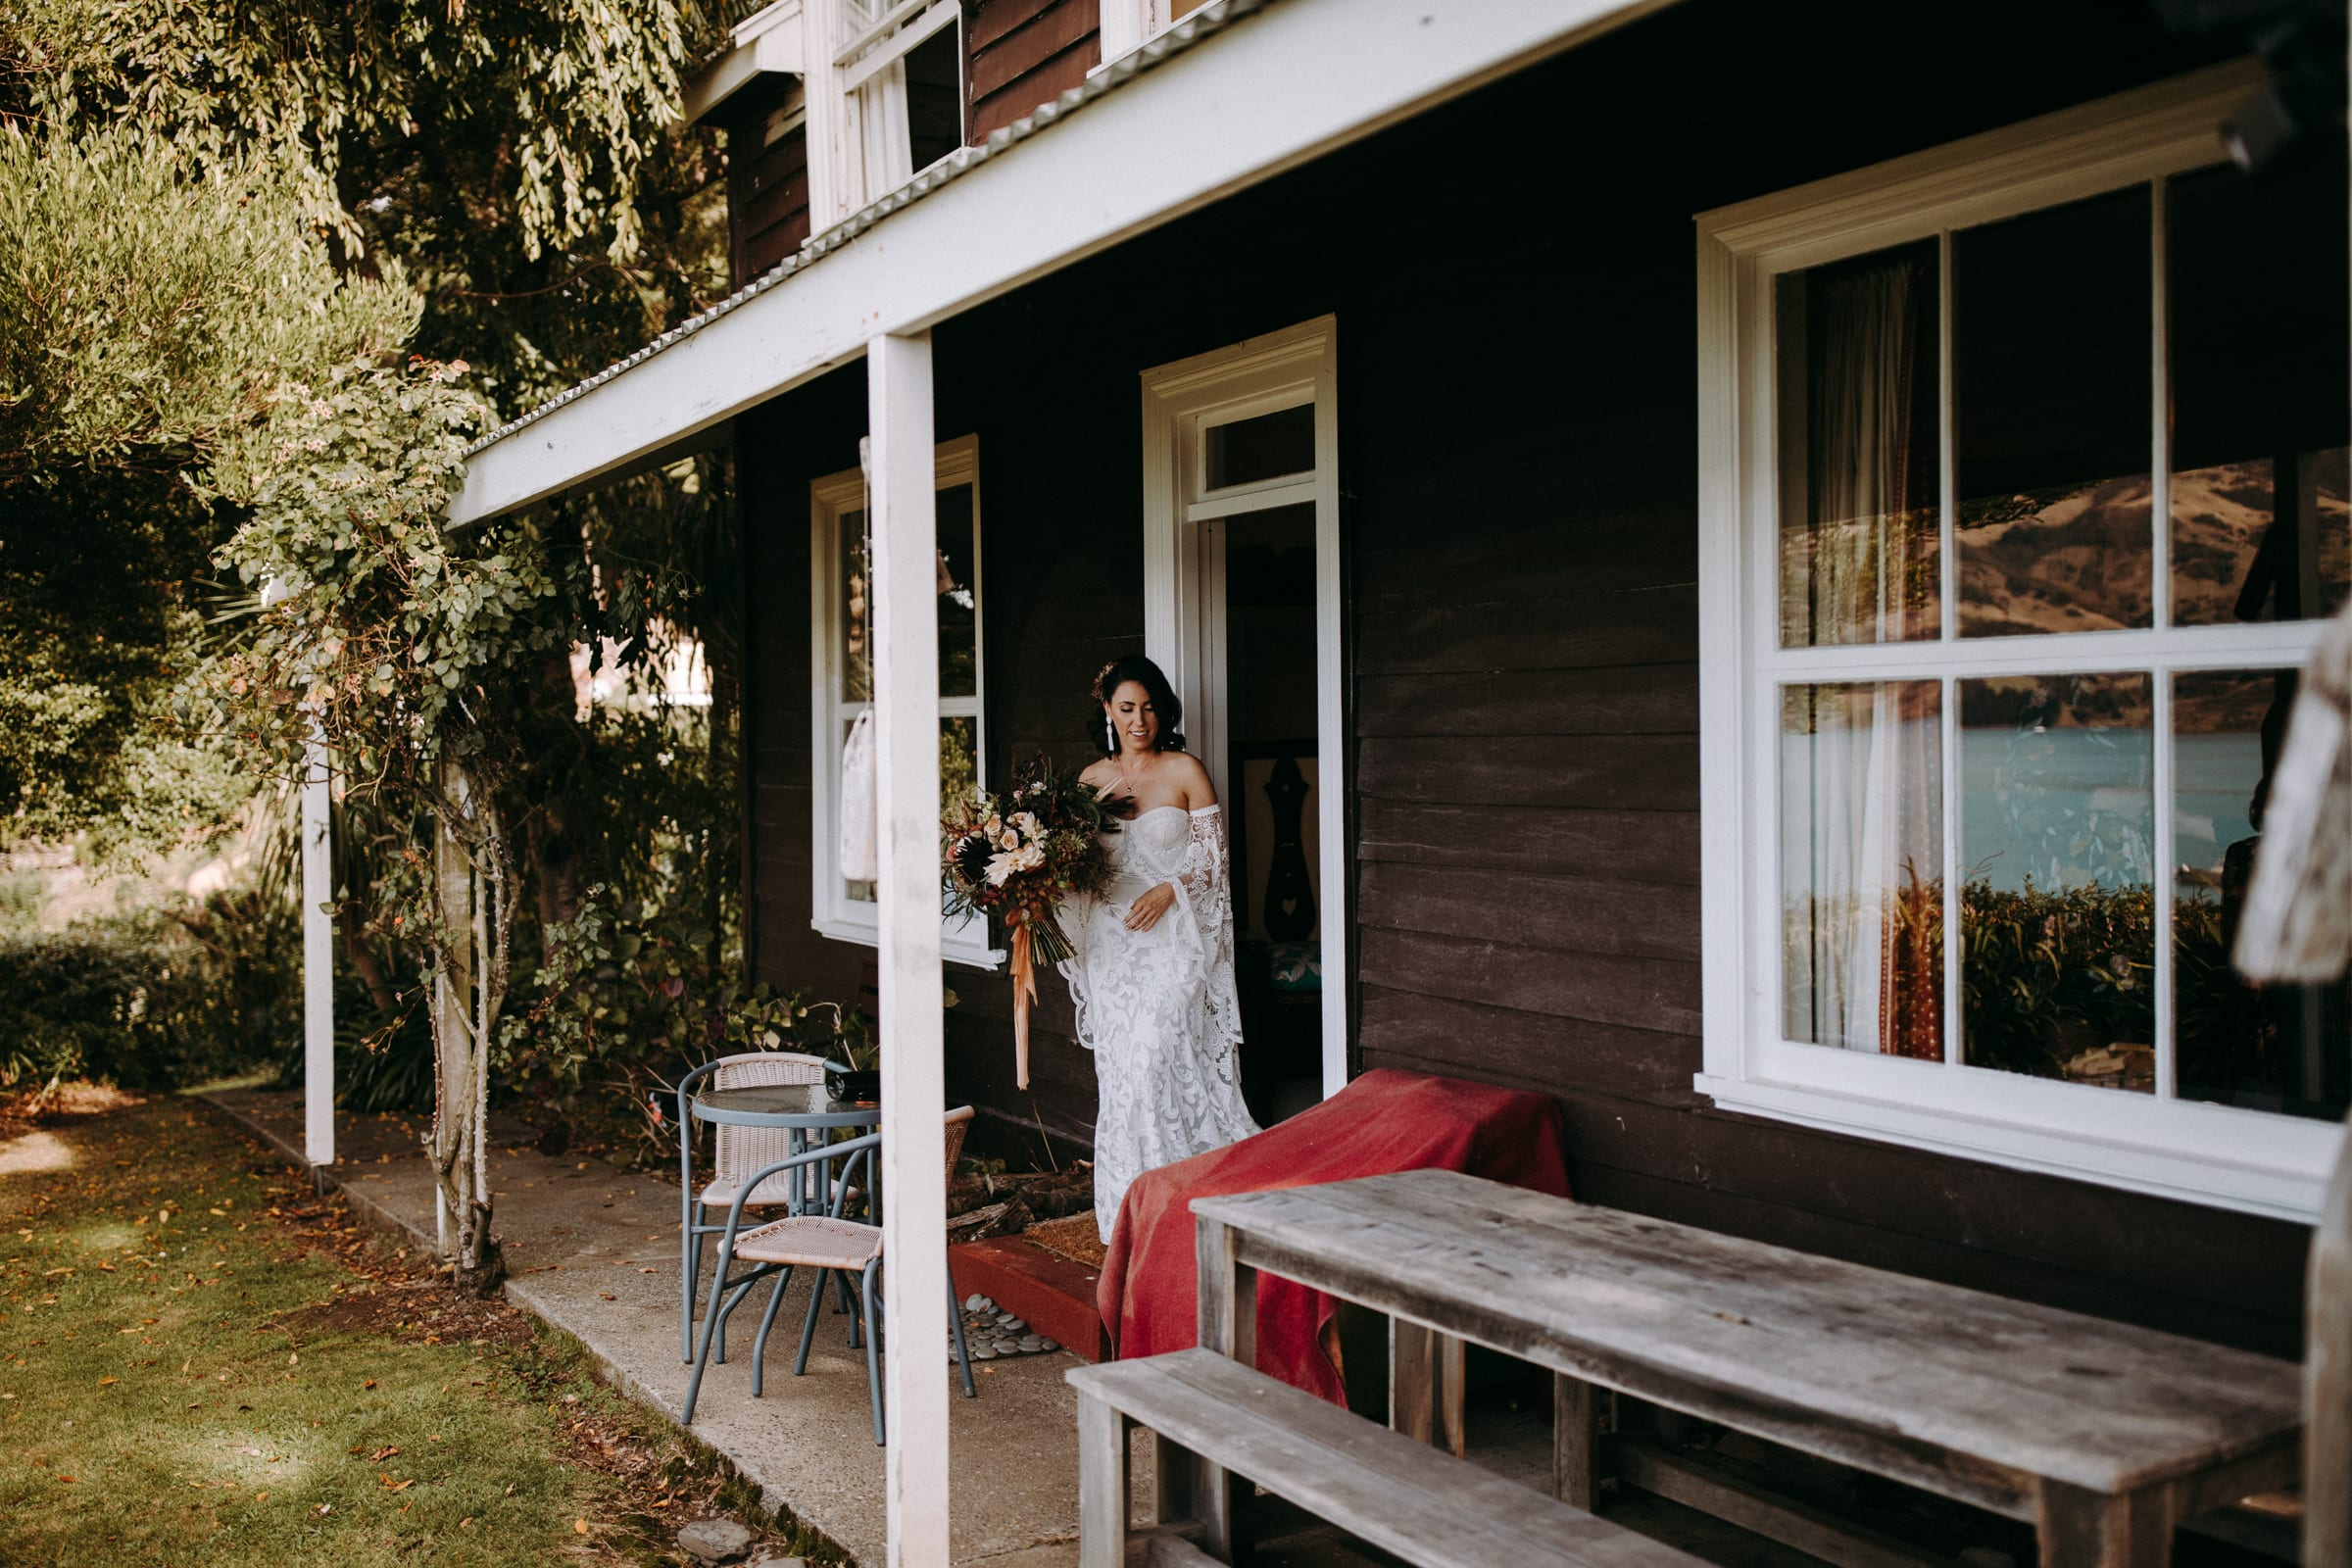 A bride is stepping out of the front door of a house and holding a flower bouquet.